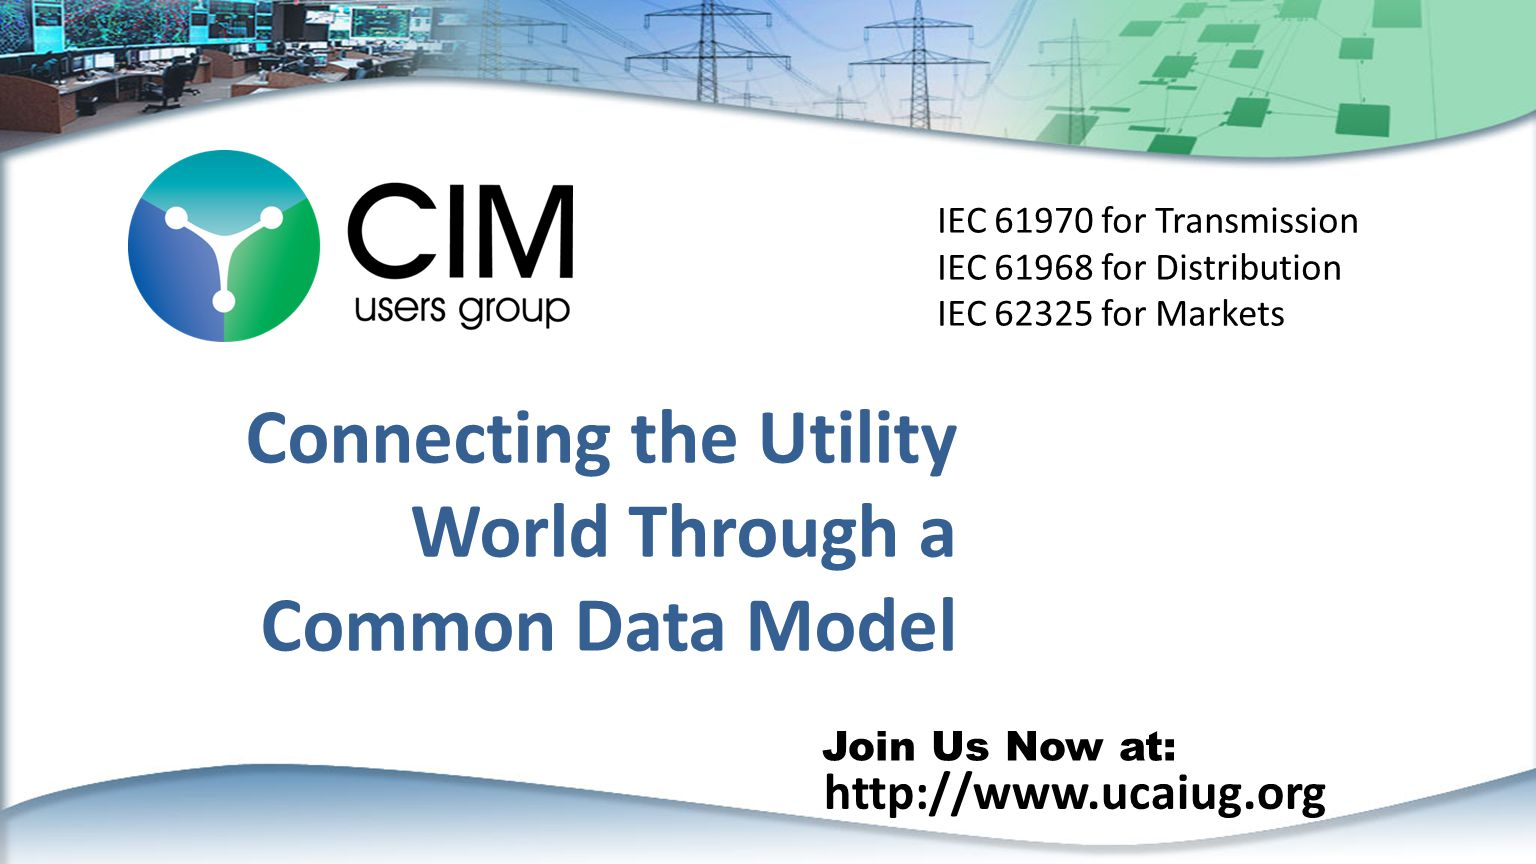 http://www.ucaiug.org Join Us Now at: Connecting the Utility World Through a Common Data Model IEC 61970 for Transmission IEC 61968 for Distribution IEC 62325 for Markets